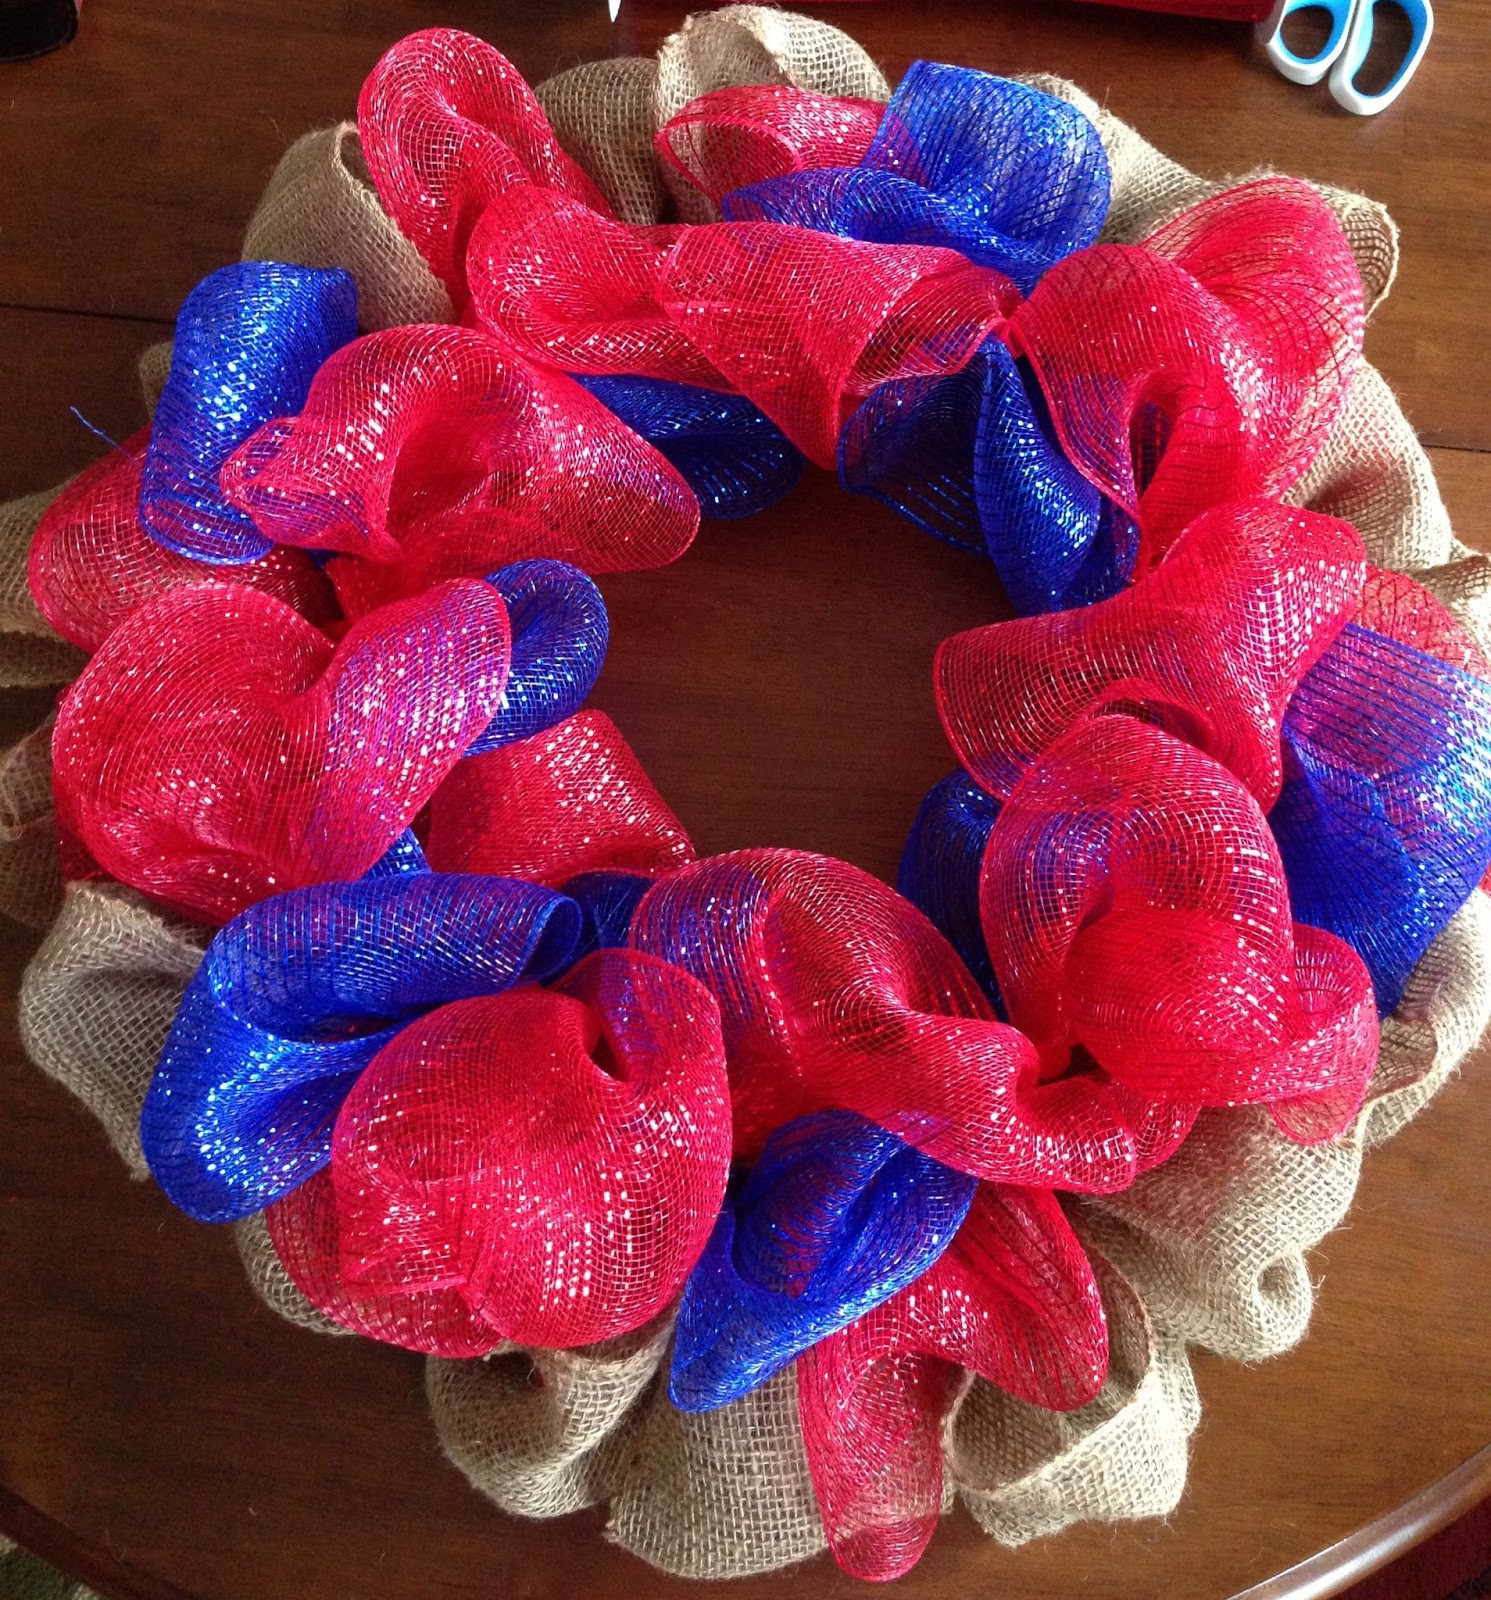 Best ideas about Mesh Wreaths DIY . Save or Pin A Little Bolt of Life 4th of July Deco Mesh Wreath DIY Now.